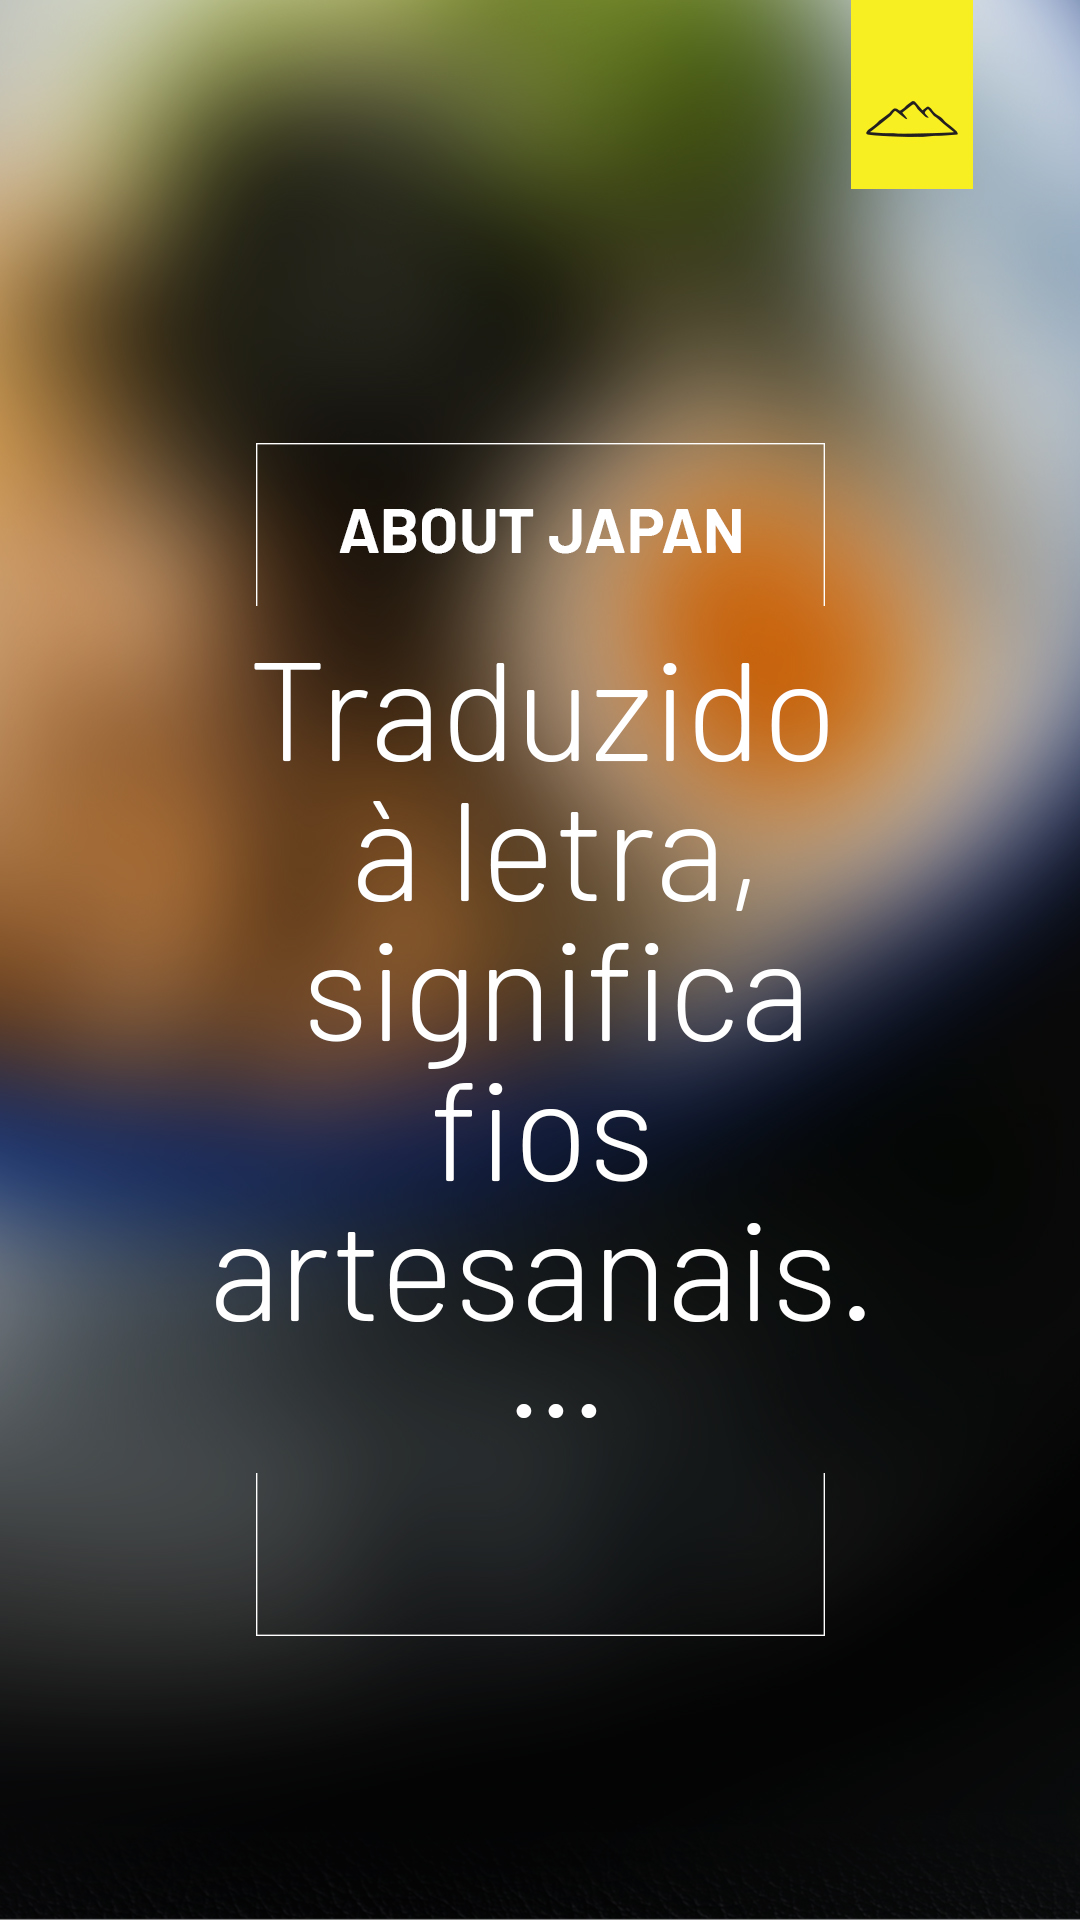 AFU_SM_PostStorie18_resposta1_AboutJapan_01S